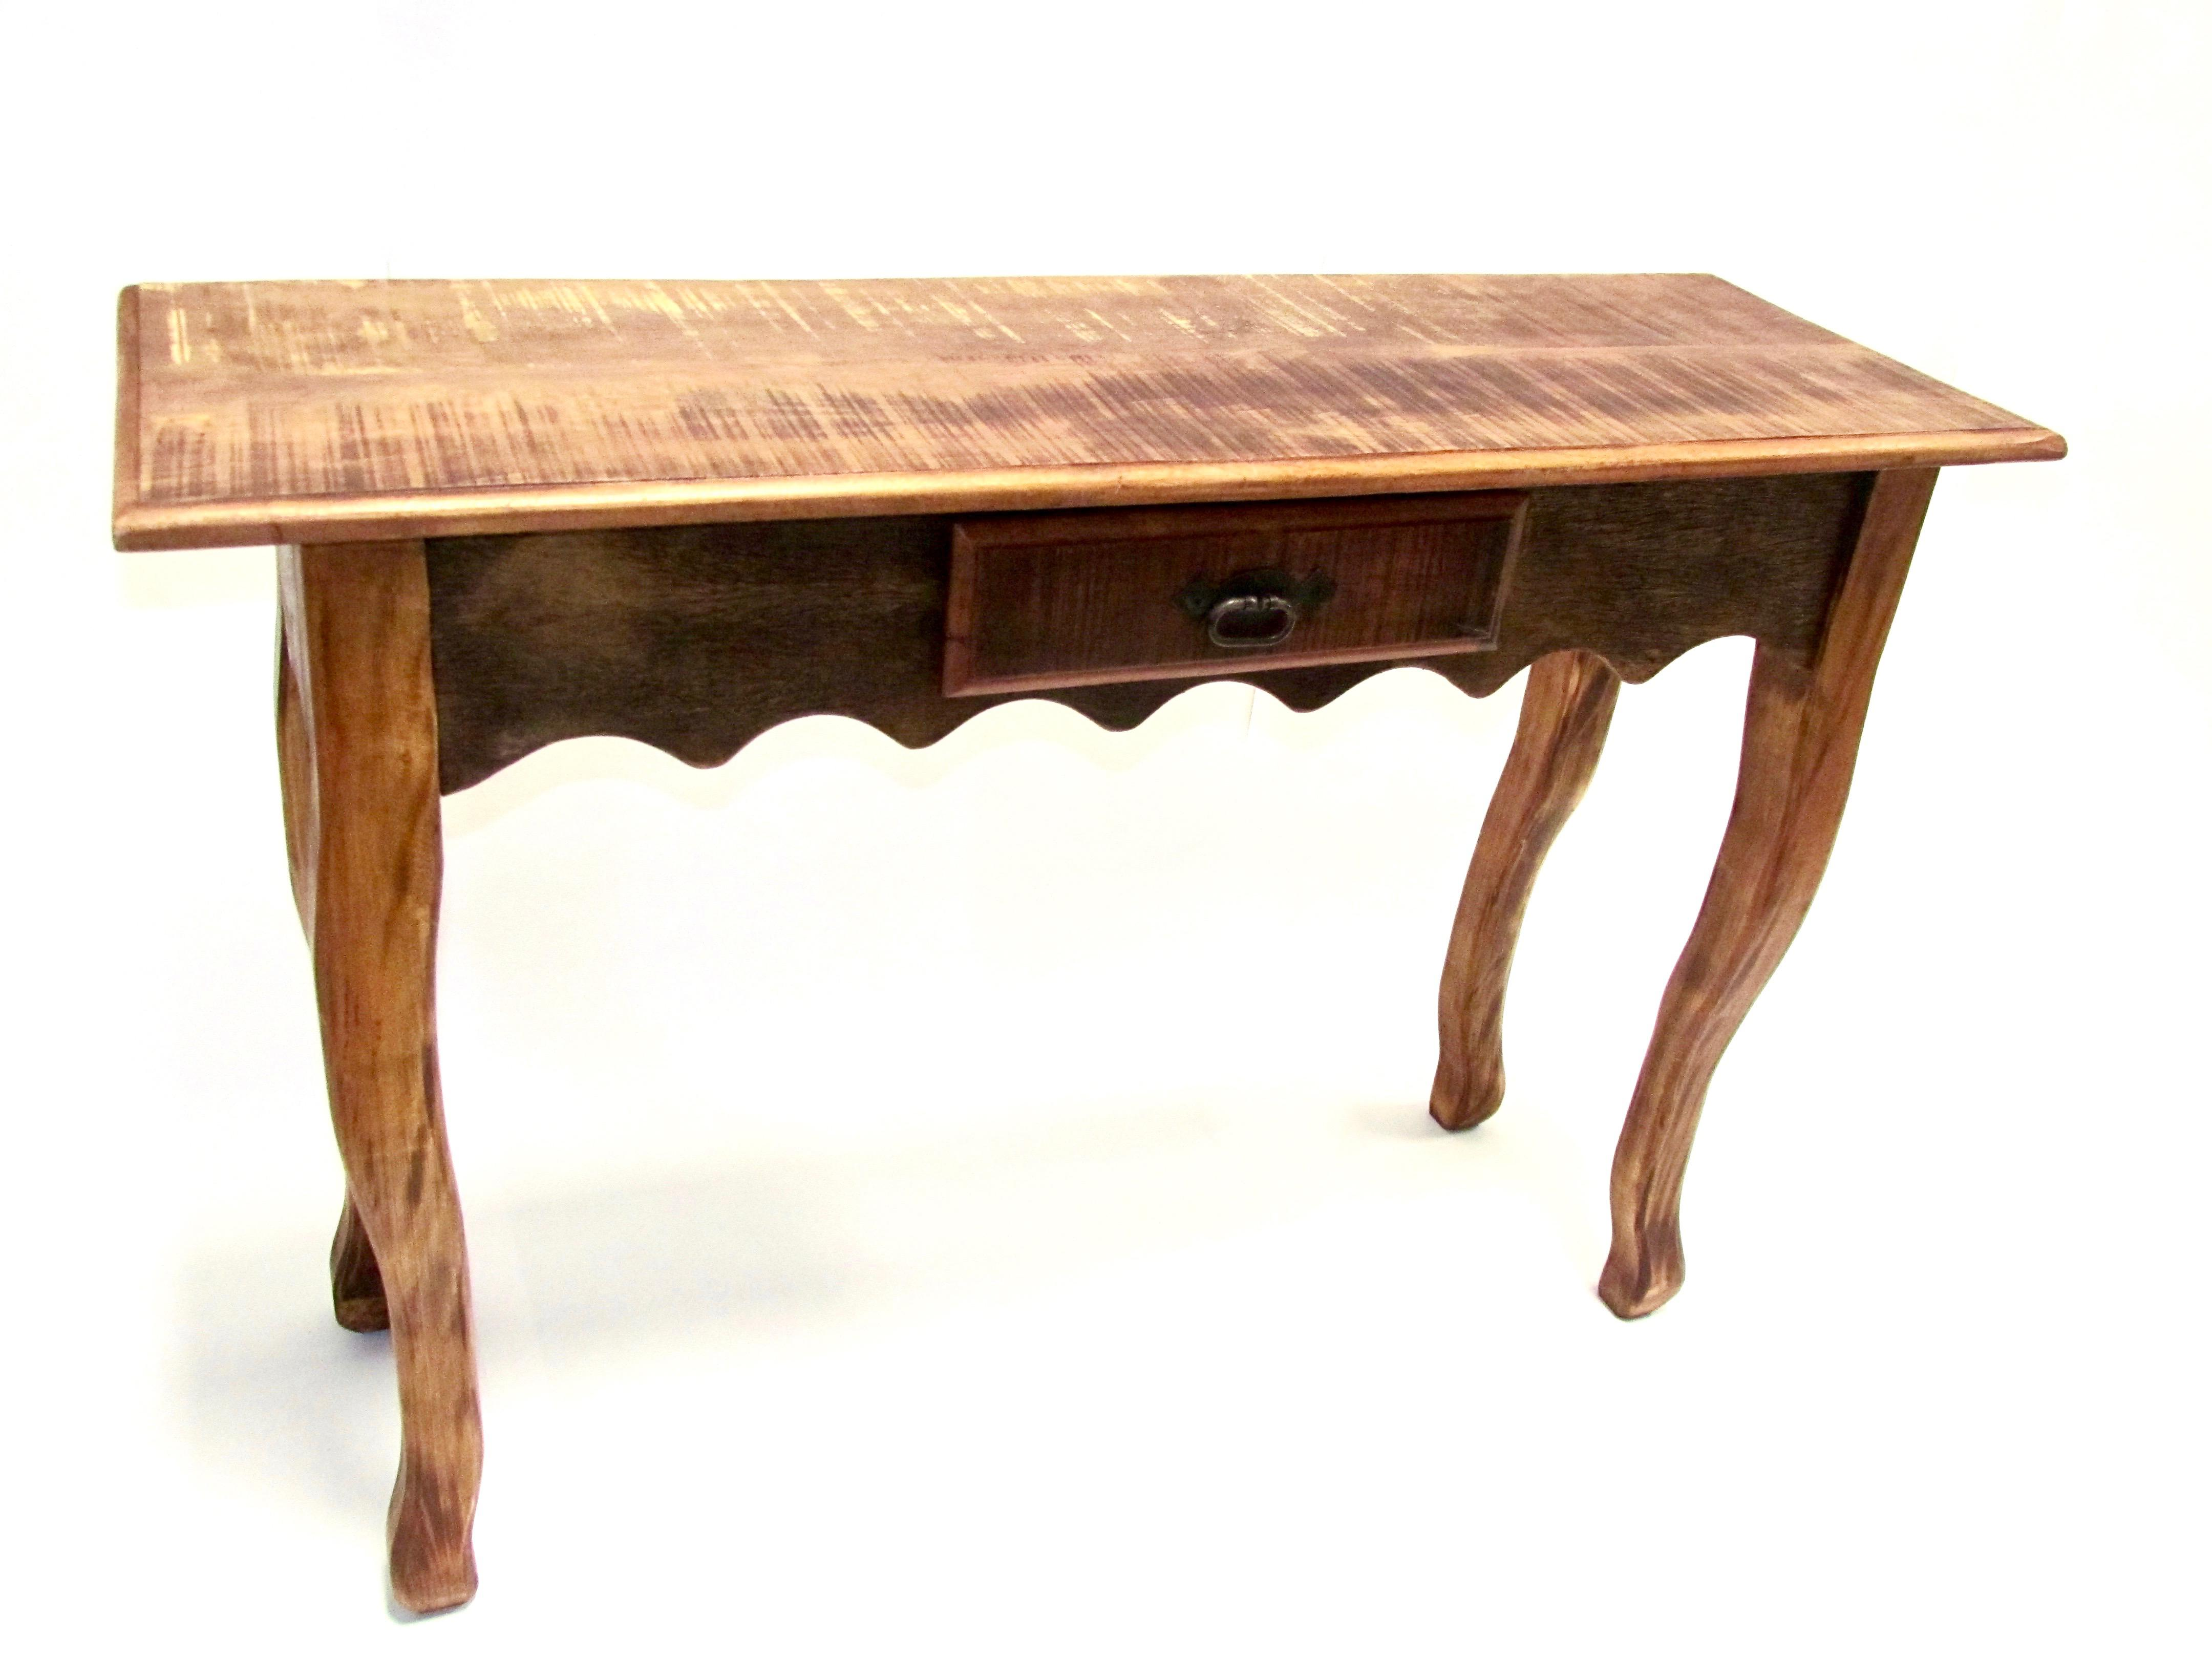 Antique Elegant Console Table Eco Friendly Peroba Wood   Image 4 Of 5